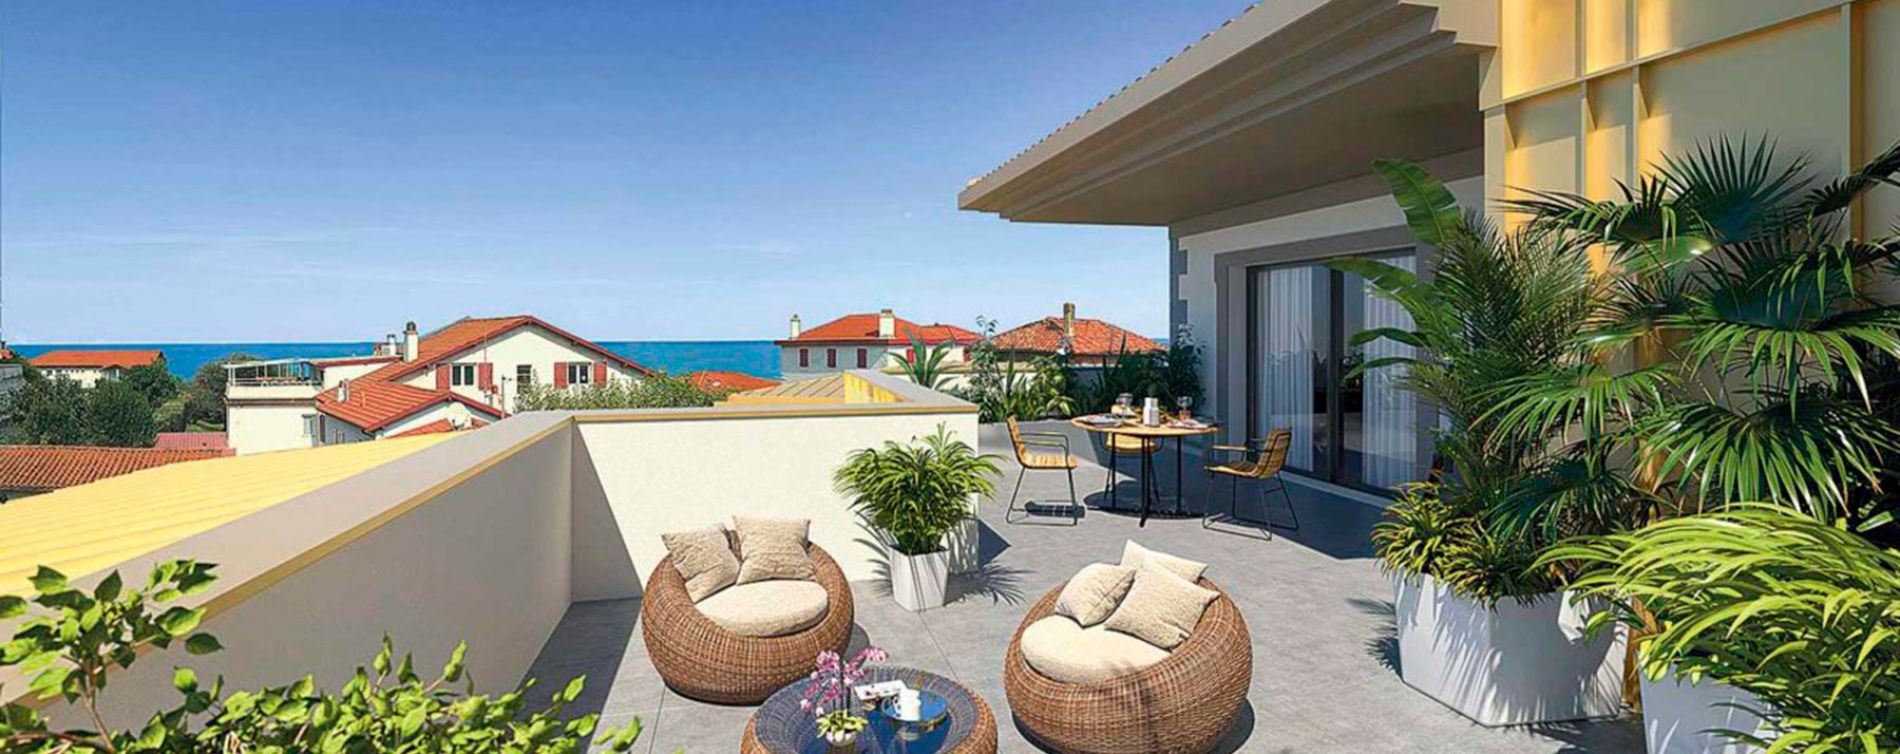 Anglet : programme immobilier neuve « Programme immobilier n°217098 »